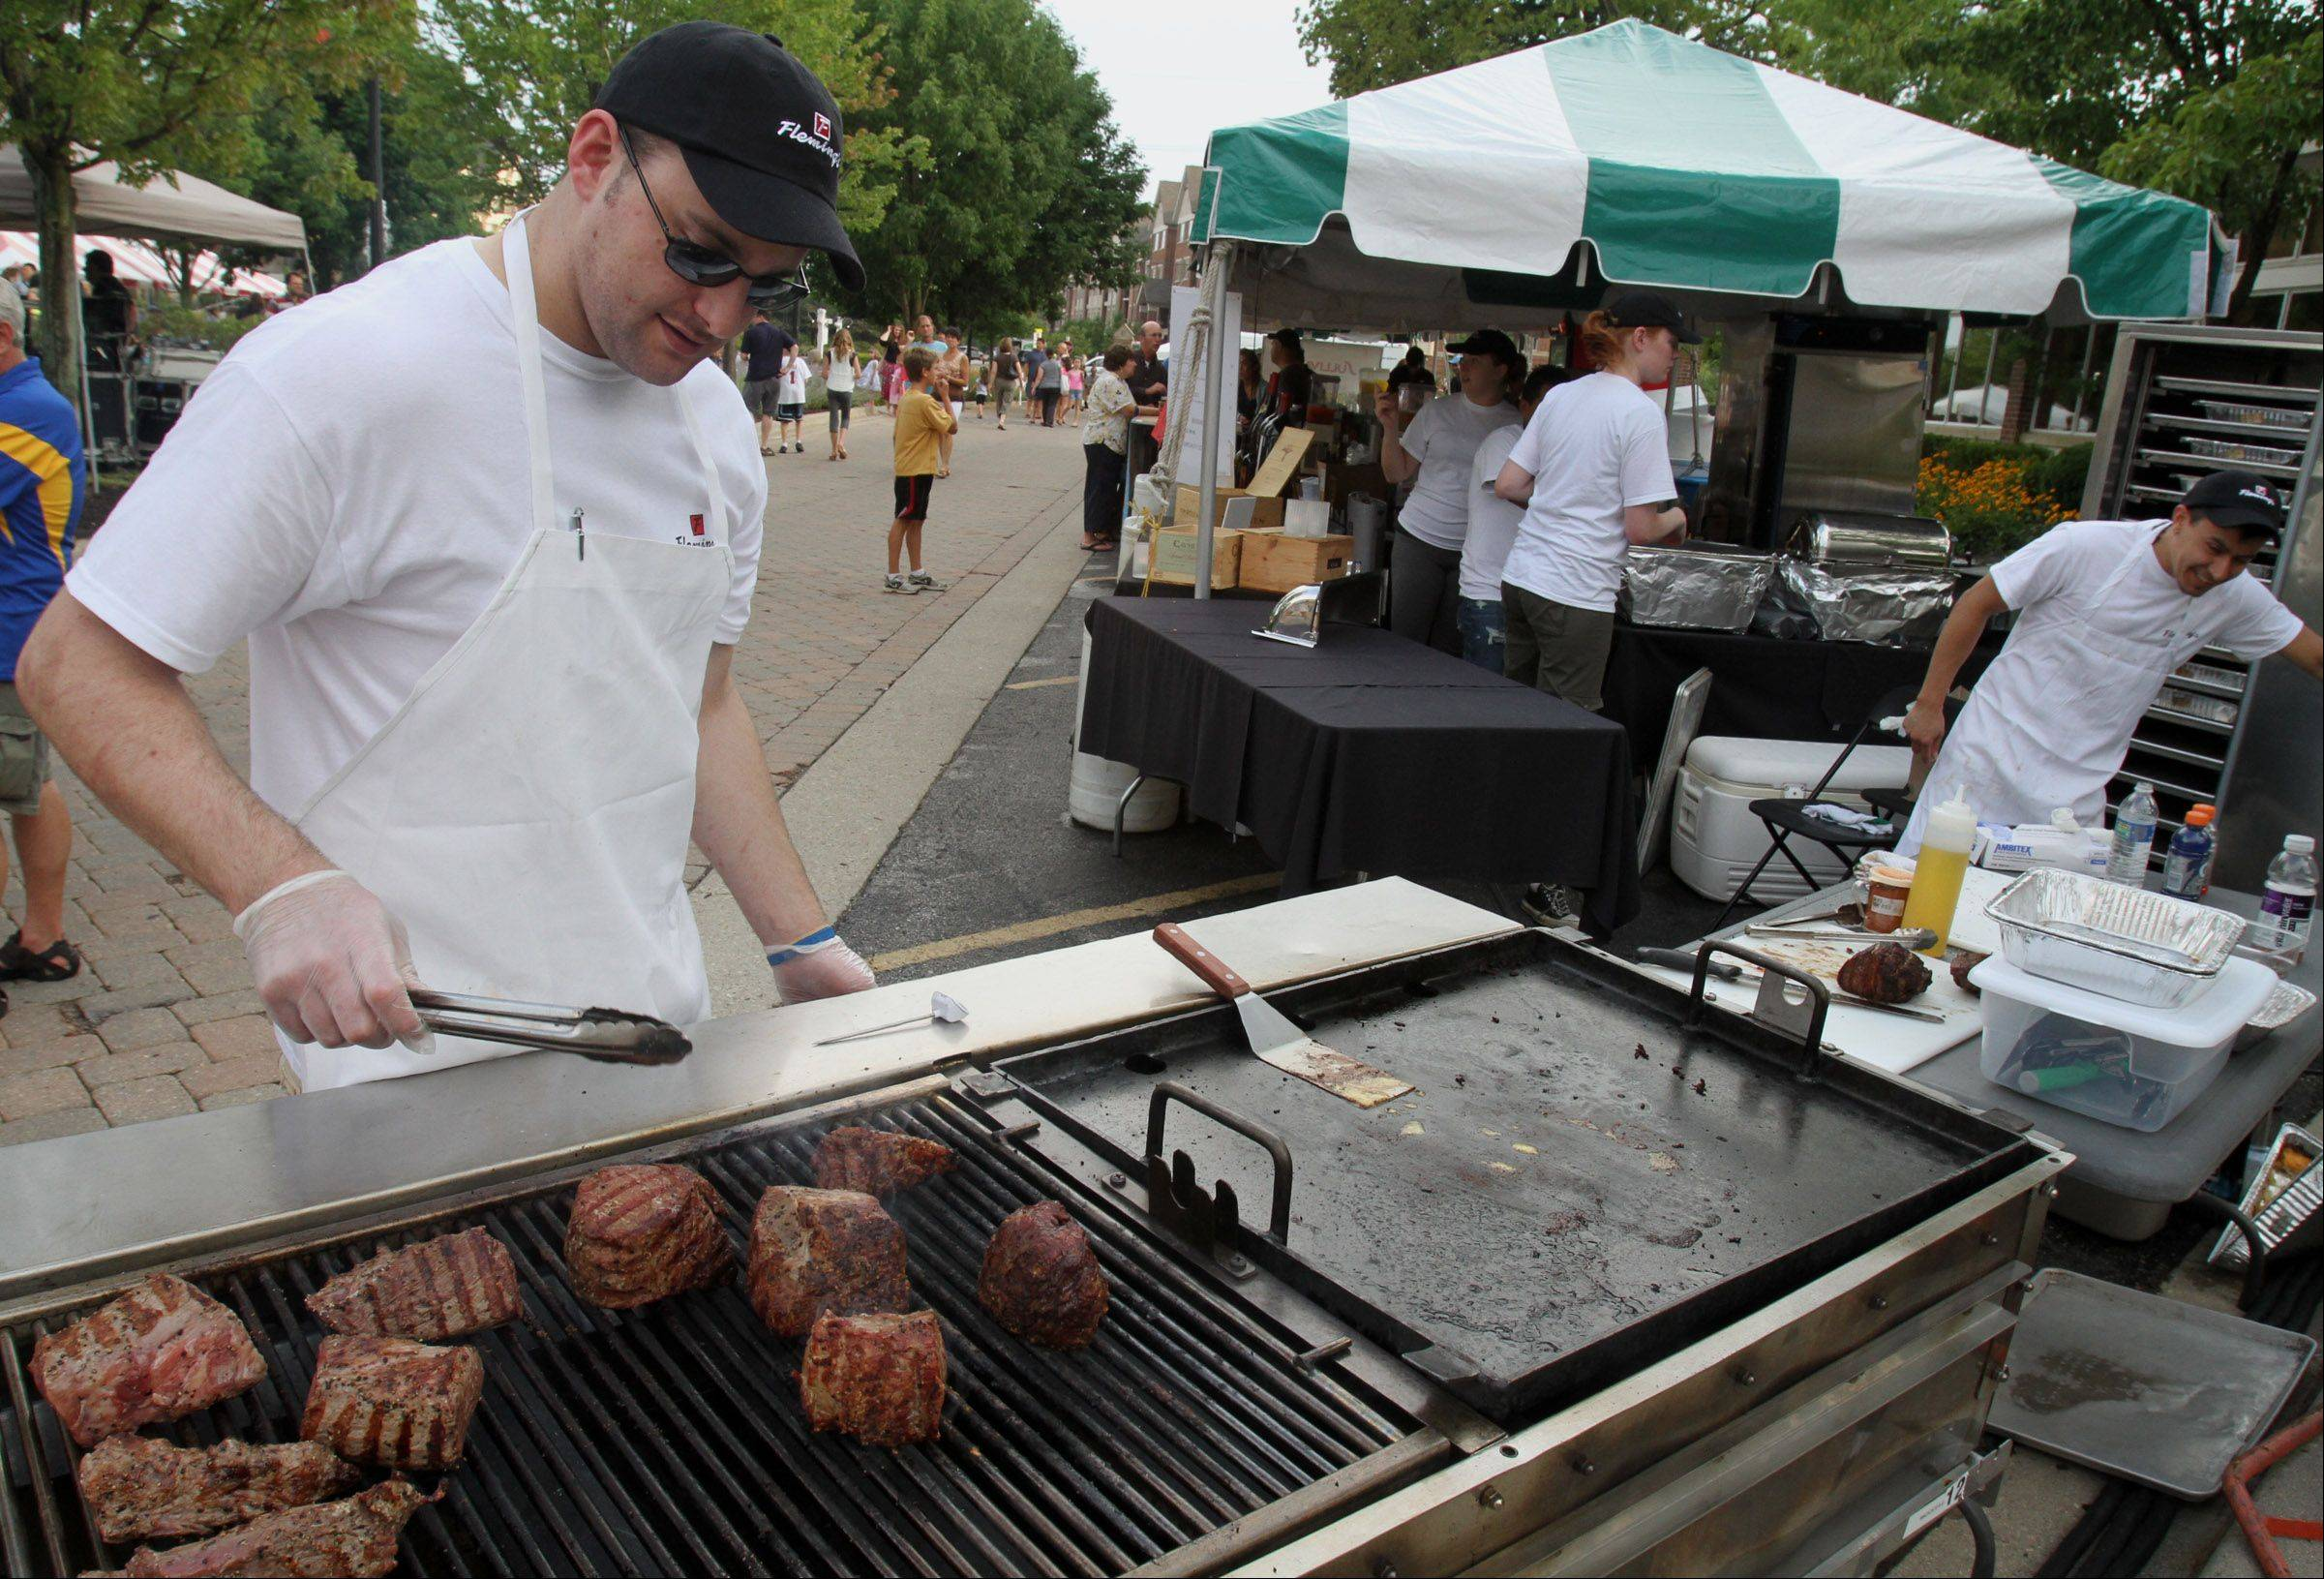 George LeClaire/gleclaire@dailyherald.coBen Knapp of Lake Barrington, a student chef for Fleming's Prime Steakhouse and Wine Bar, in Lincolnshire, mans the steakhouse's grill at the annual Taste of Lincolnshire at Village Green.